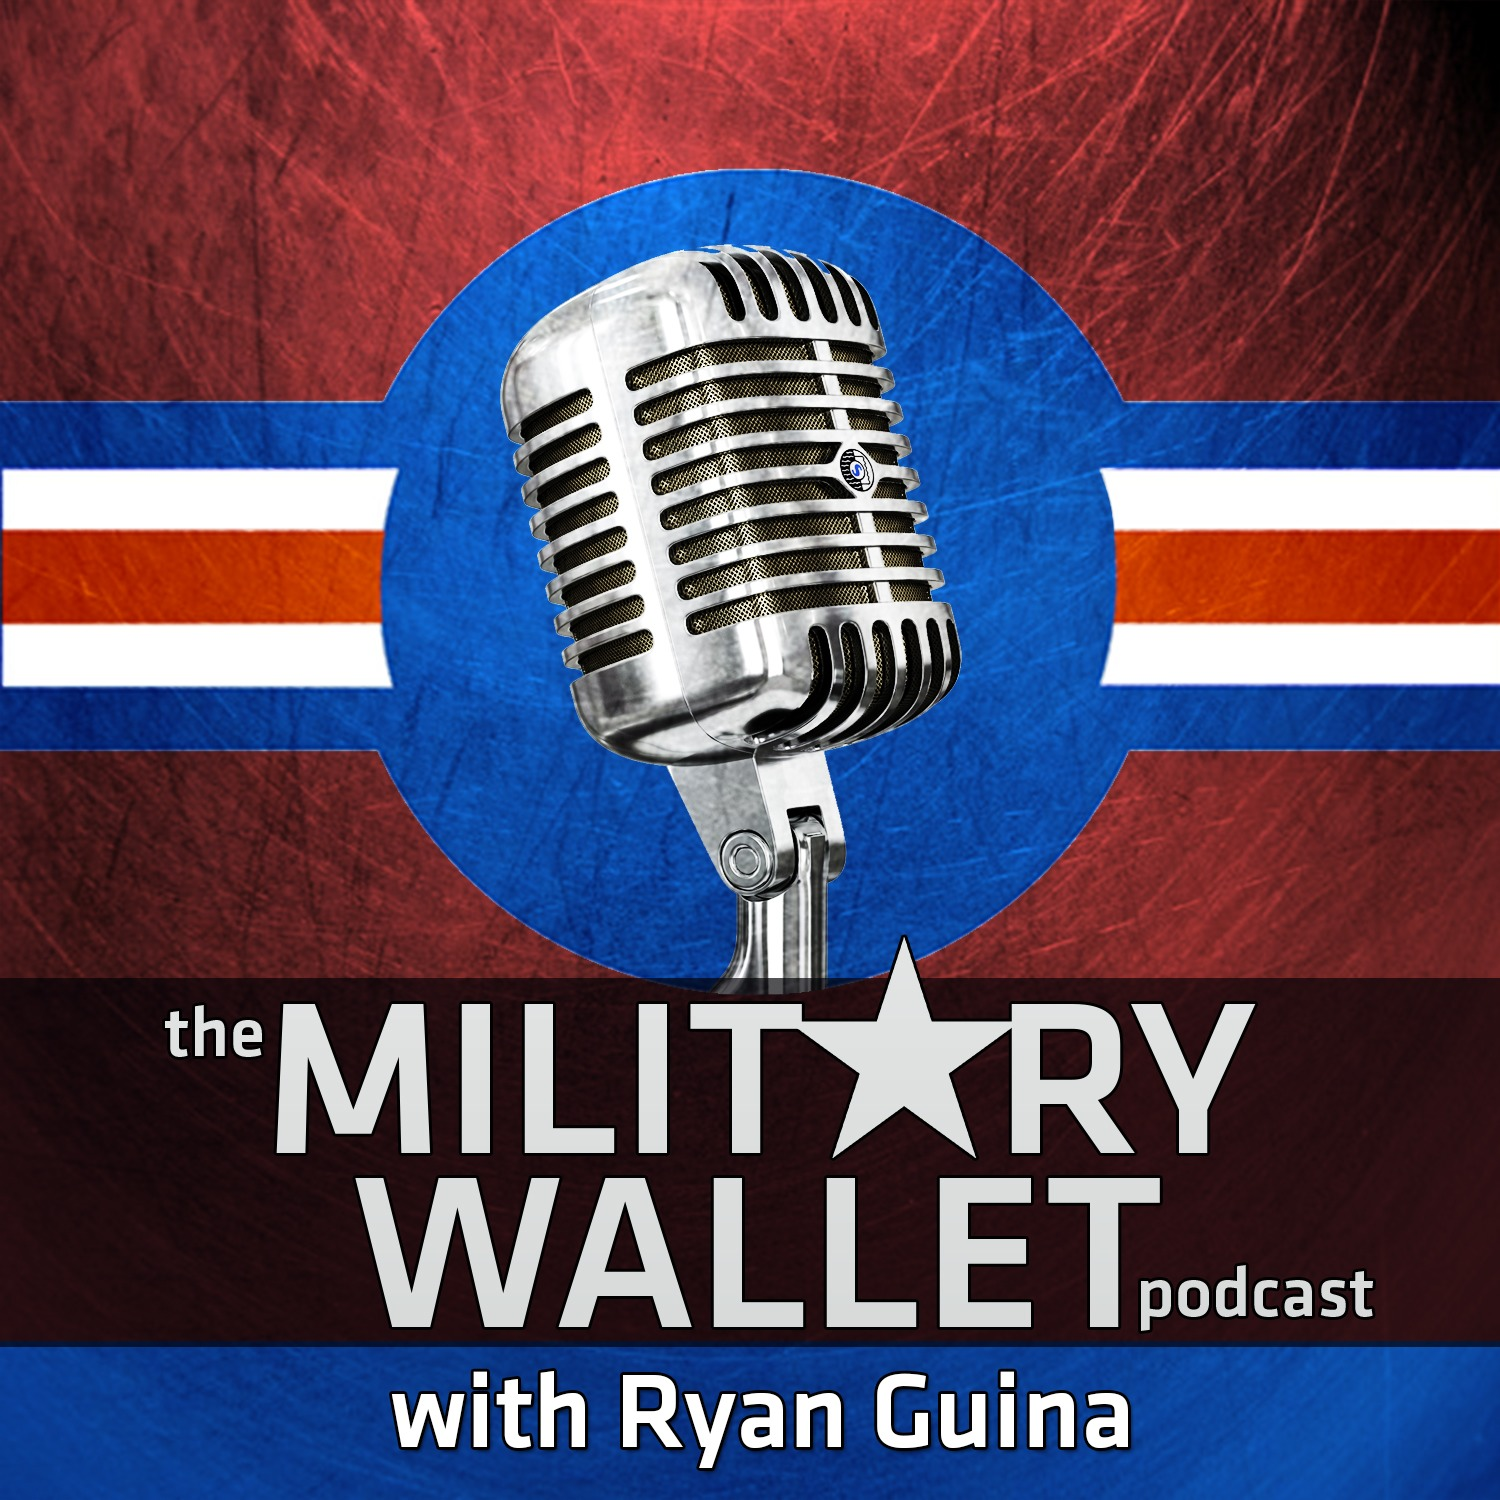 The Military Wallet Podcast with Ryan Guina on Apple Podcasts